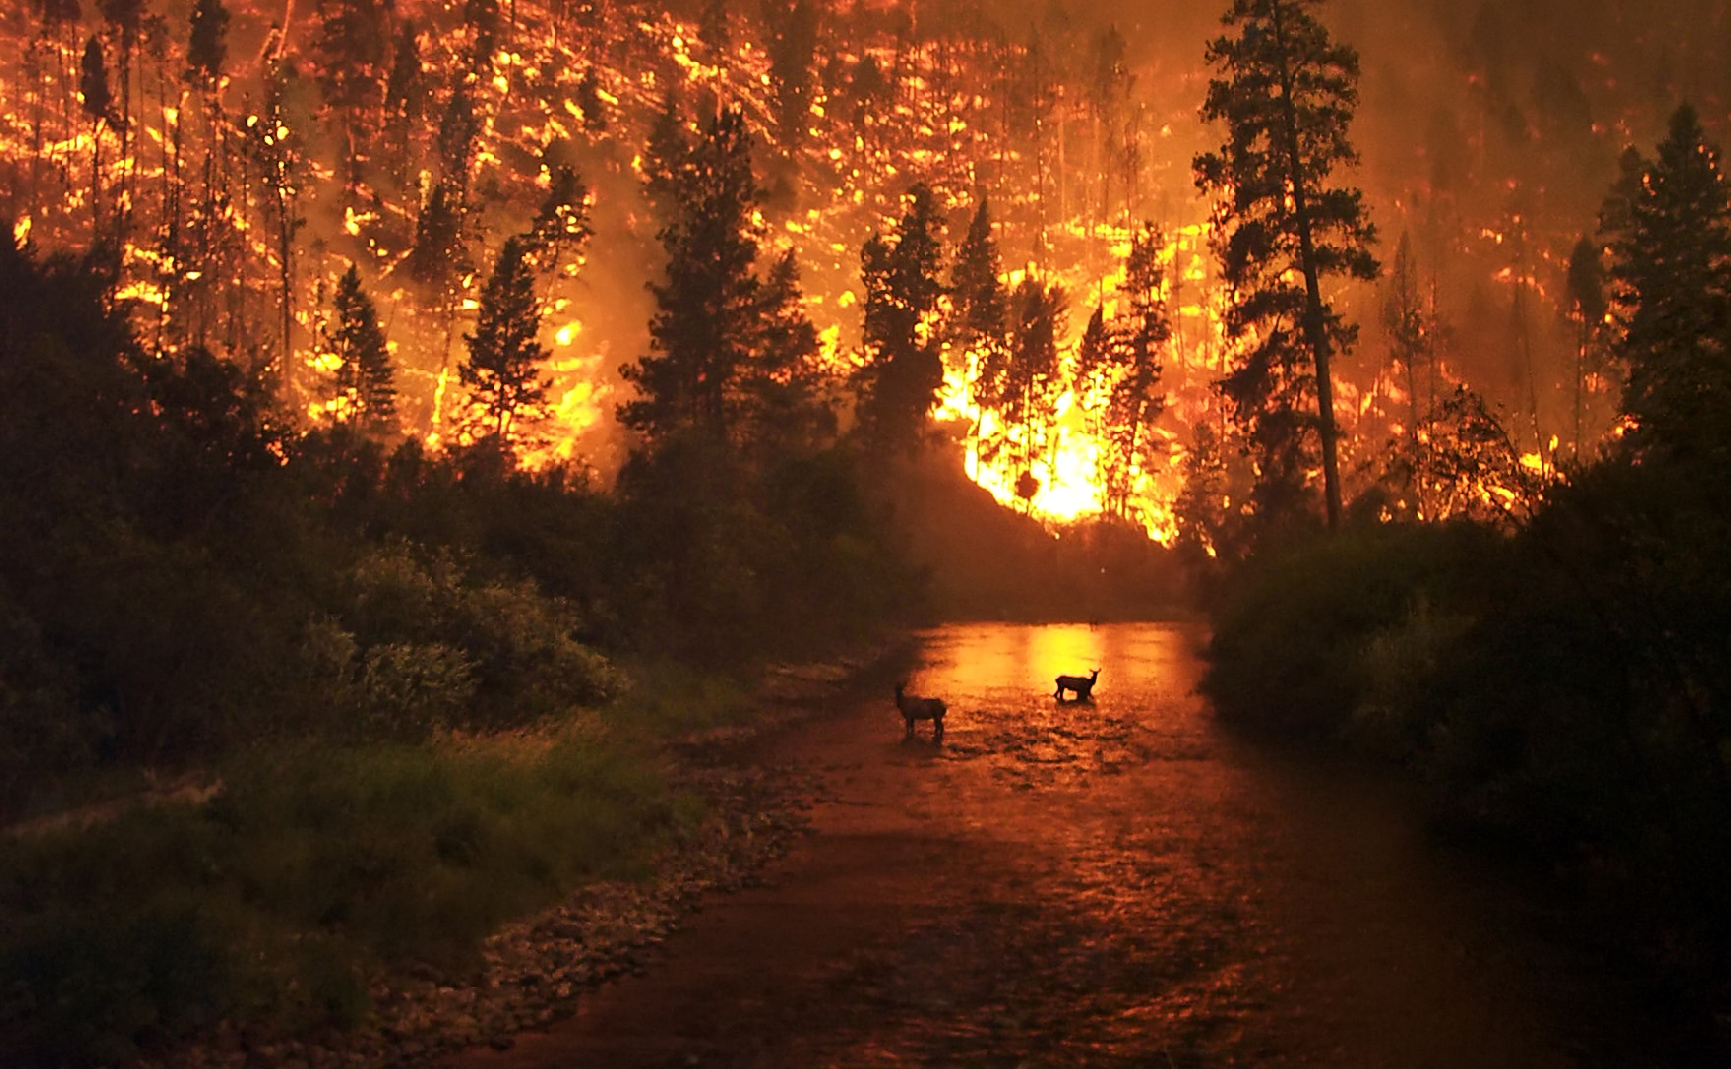 Wildfire at night, behind silhouetted forest, and reflected in a river.